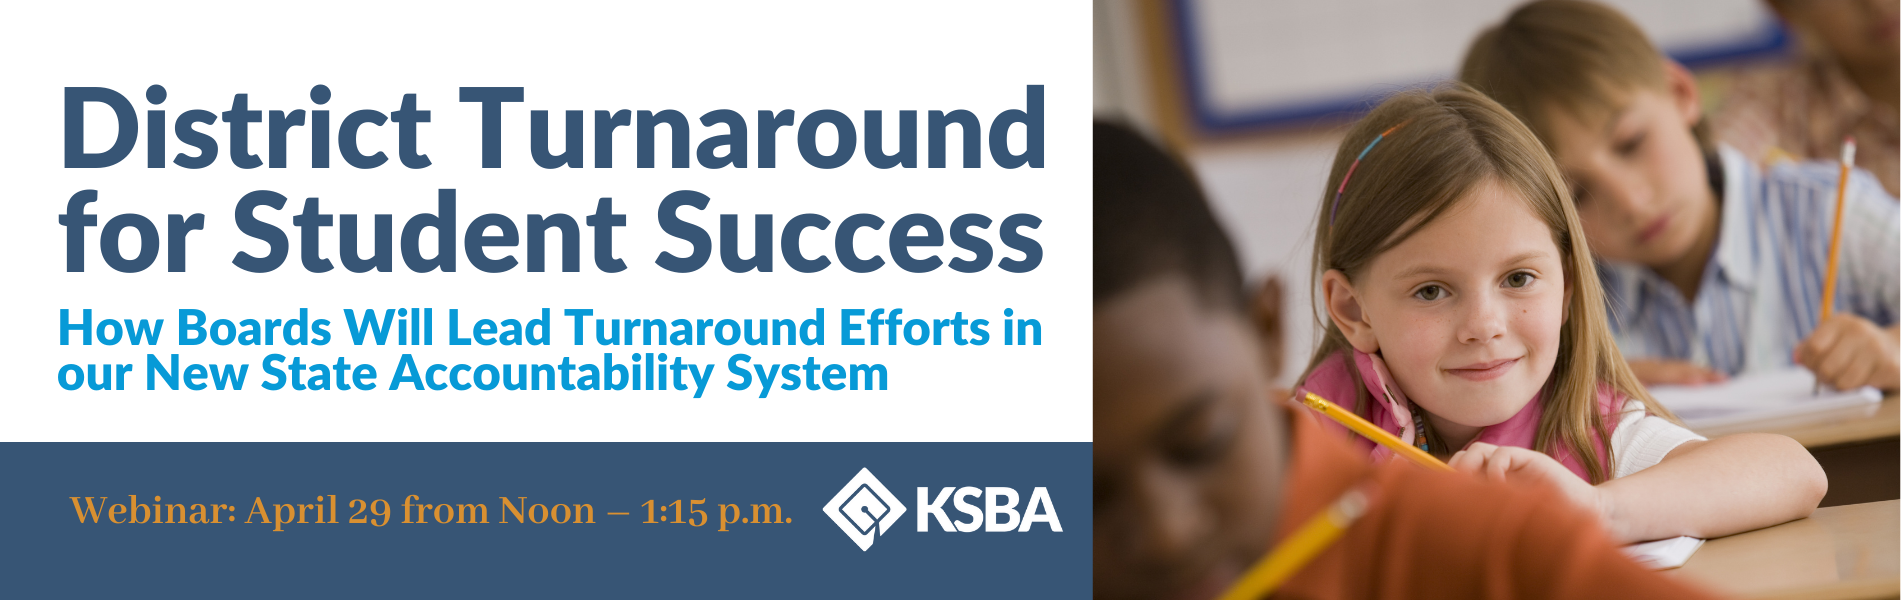 District Turnaround for Student Success: How Boards Will Lead Turnaround Efforts in our New State Accountability System